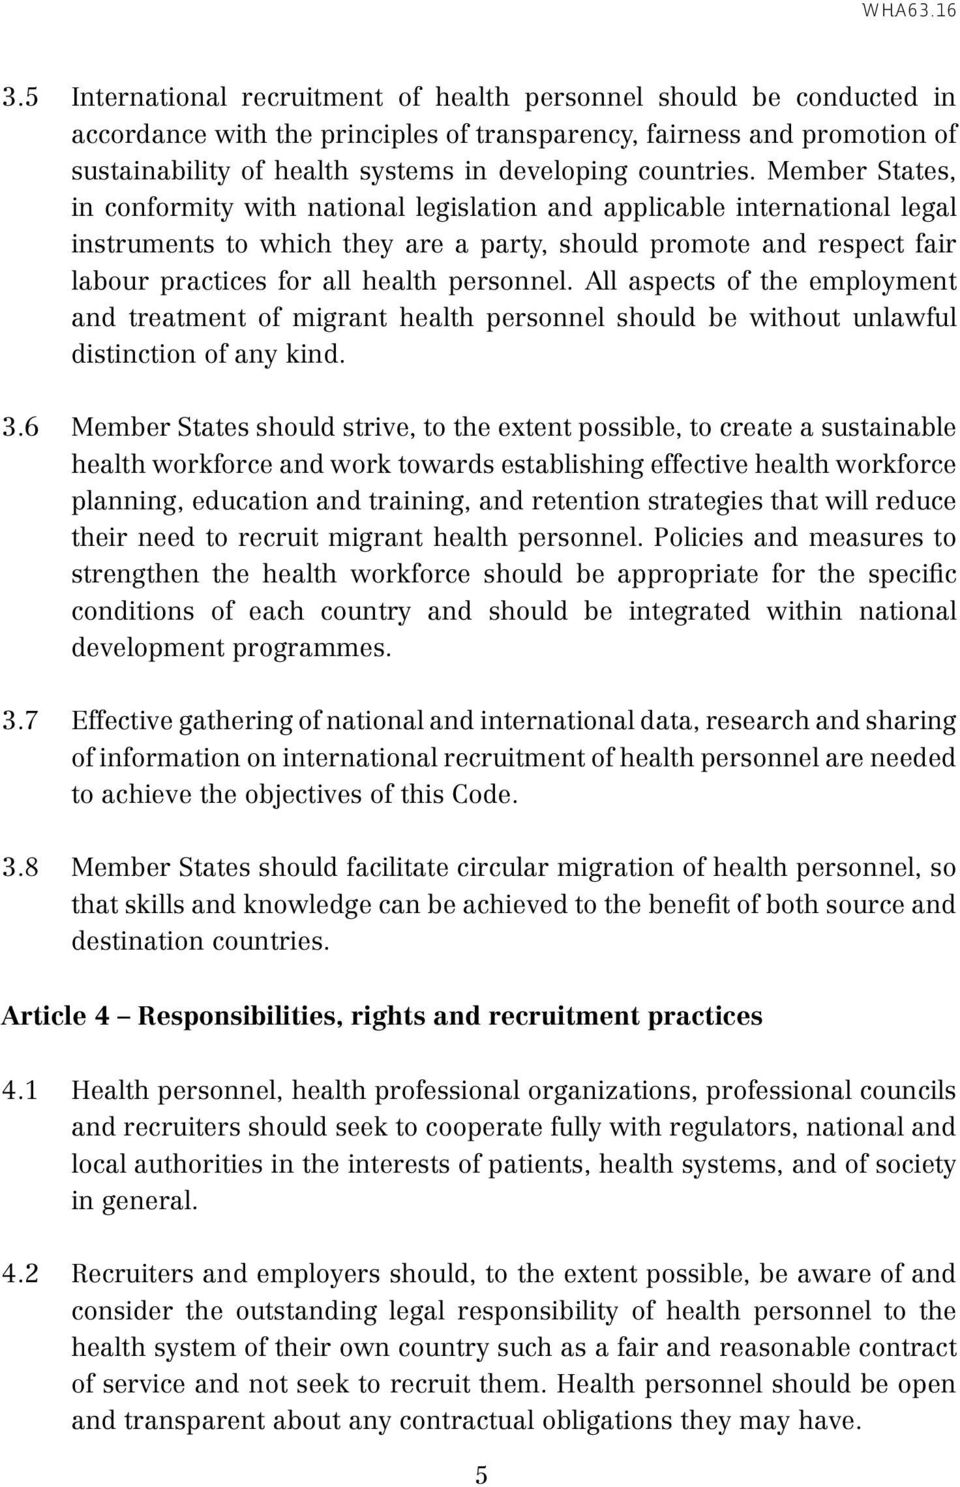 Member States, in conformity with national legislation and applicable international legal instruments to which they are a party, should promote and respect fair labour practices for all health